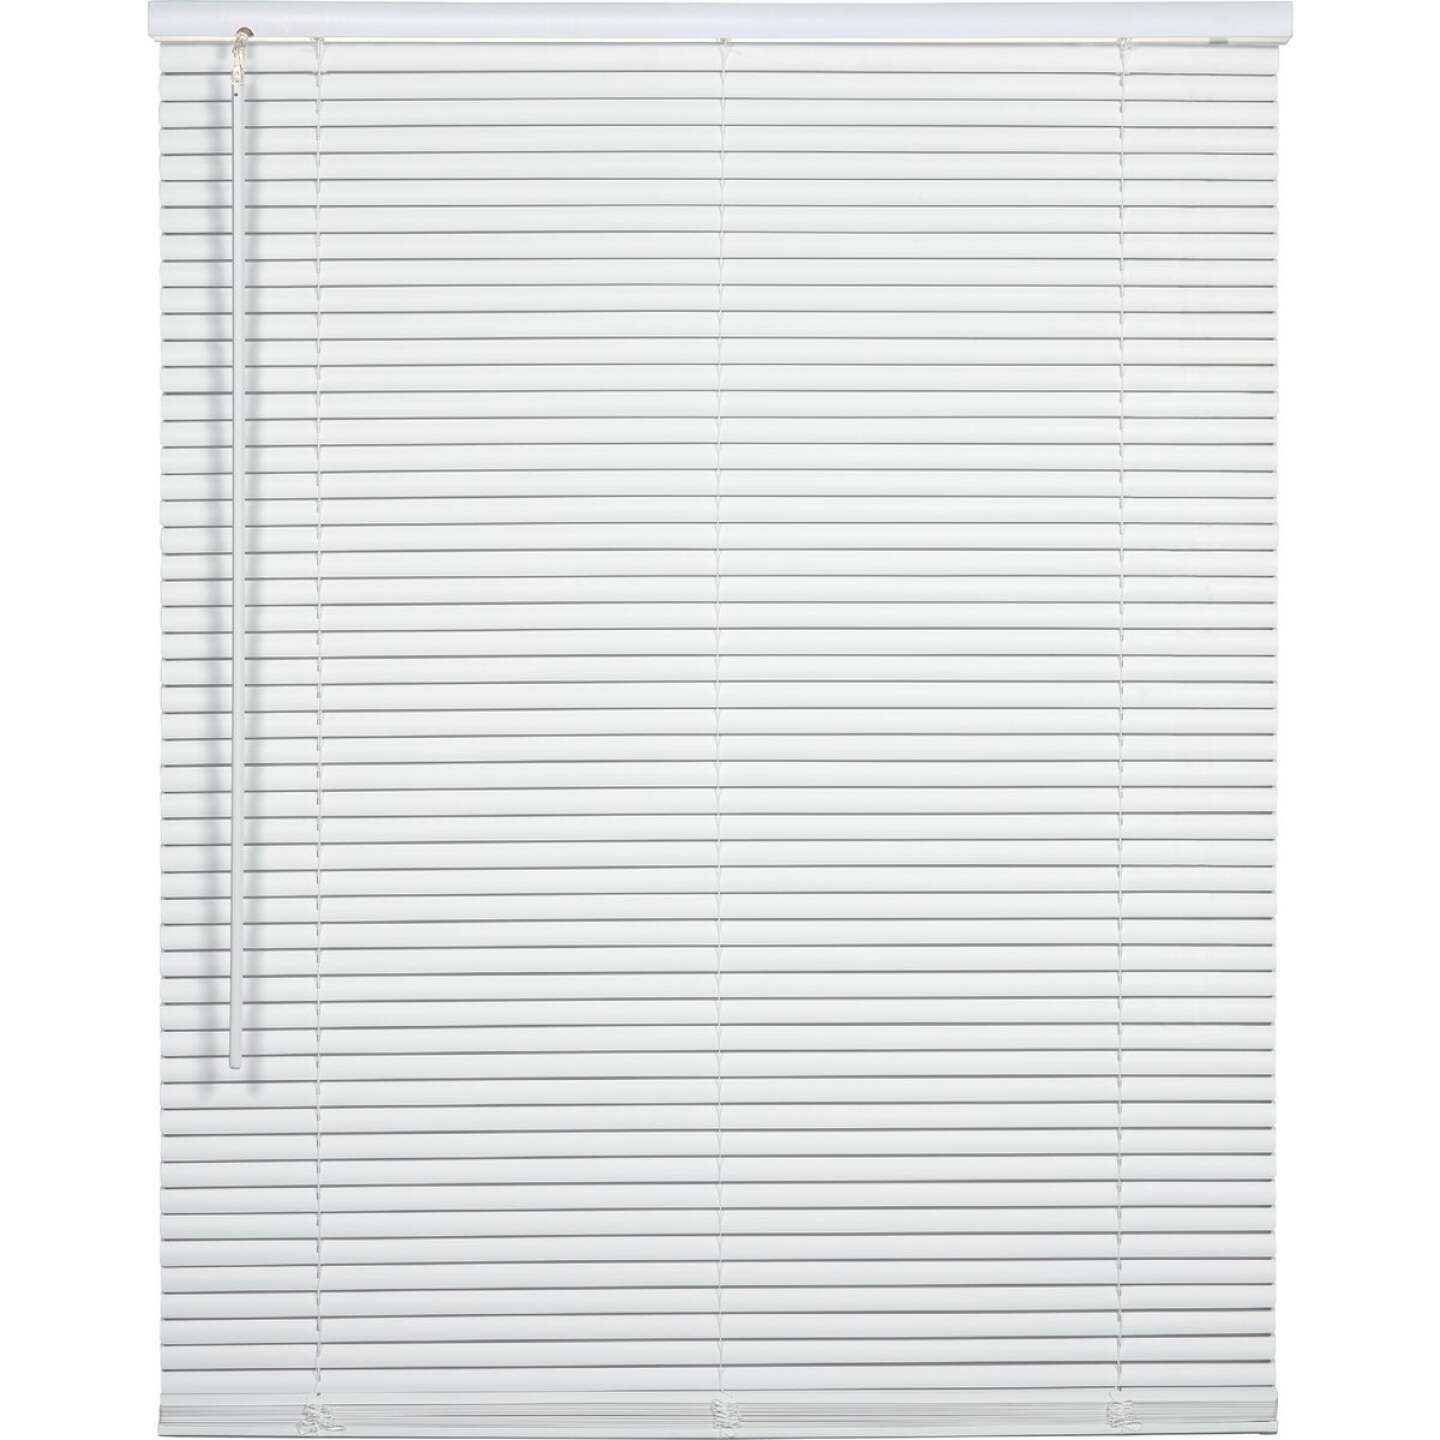 Home Impressions 46 In. x 72 In. x 1 In. White Vinyl Light Filtering Cordless Mini Blind Image 1